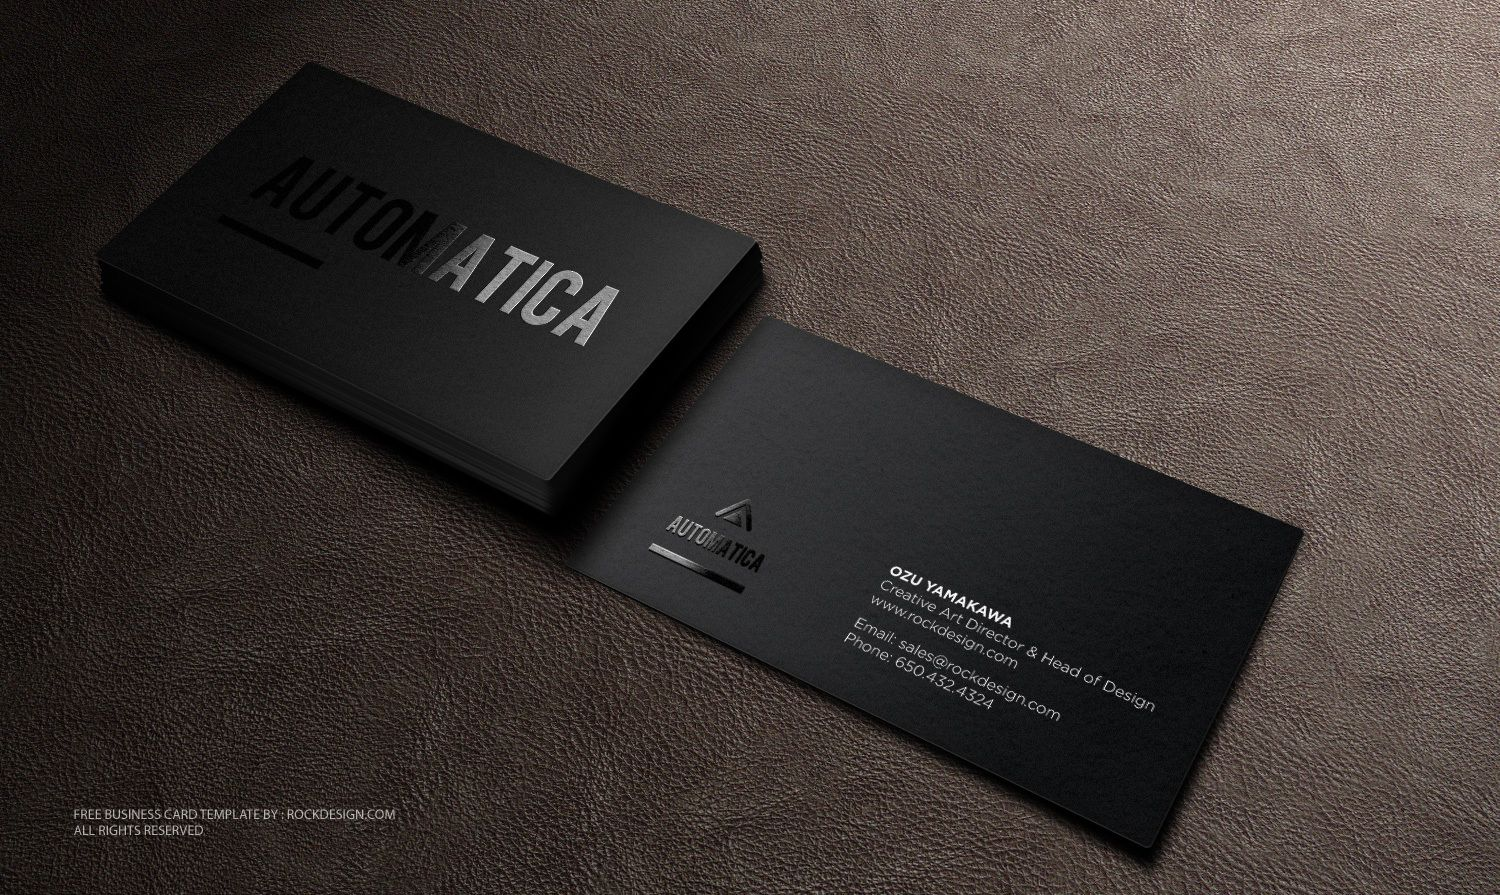 Black business card template download free design templates black business card template download free design templates accmission Choice Image